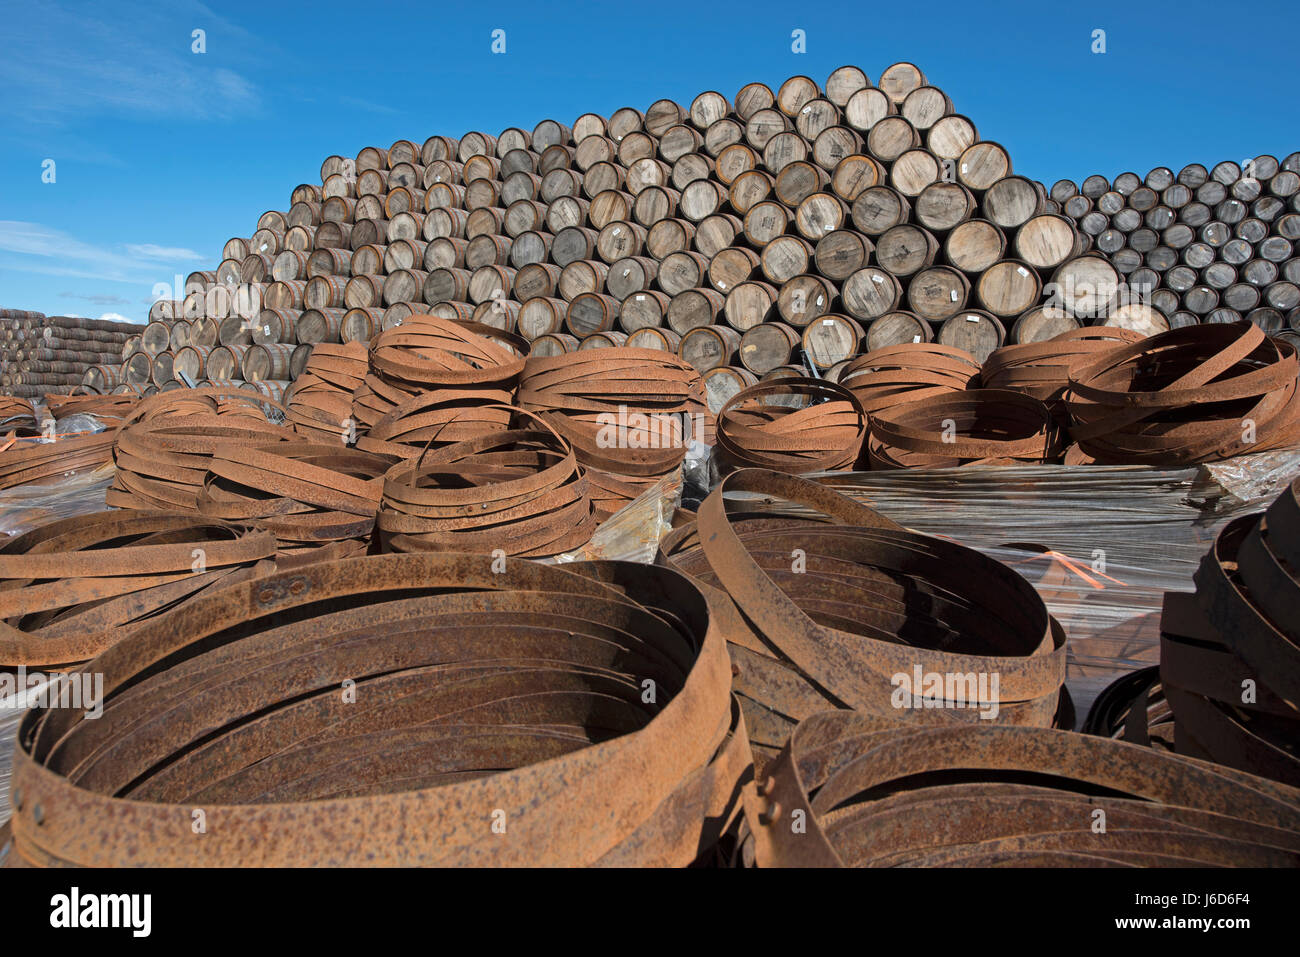 The Craigellachie cooperage in Speyside the largest cask makers in the UK. - Stock Image